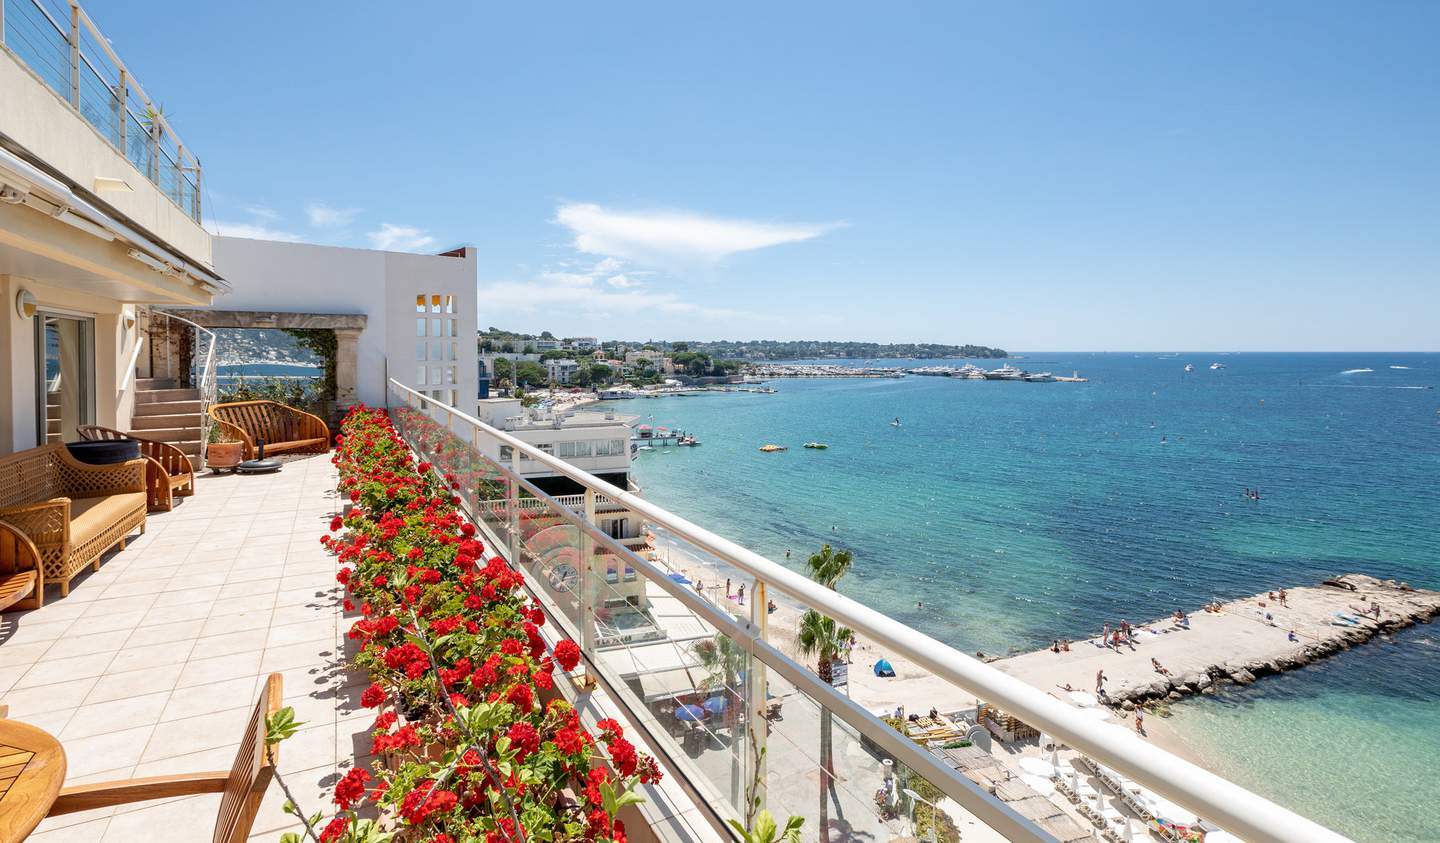 Apartment with terrace and pool Juan les pins